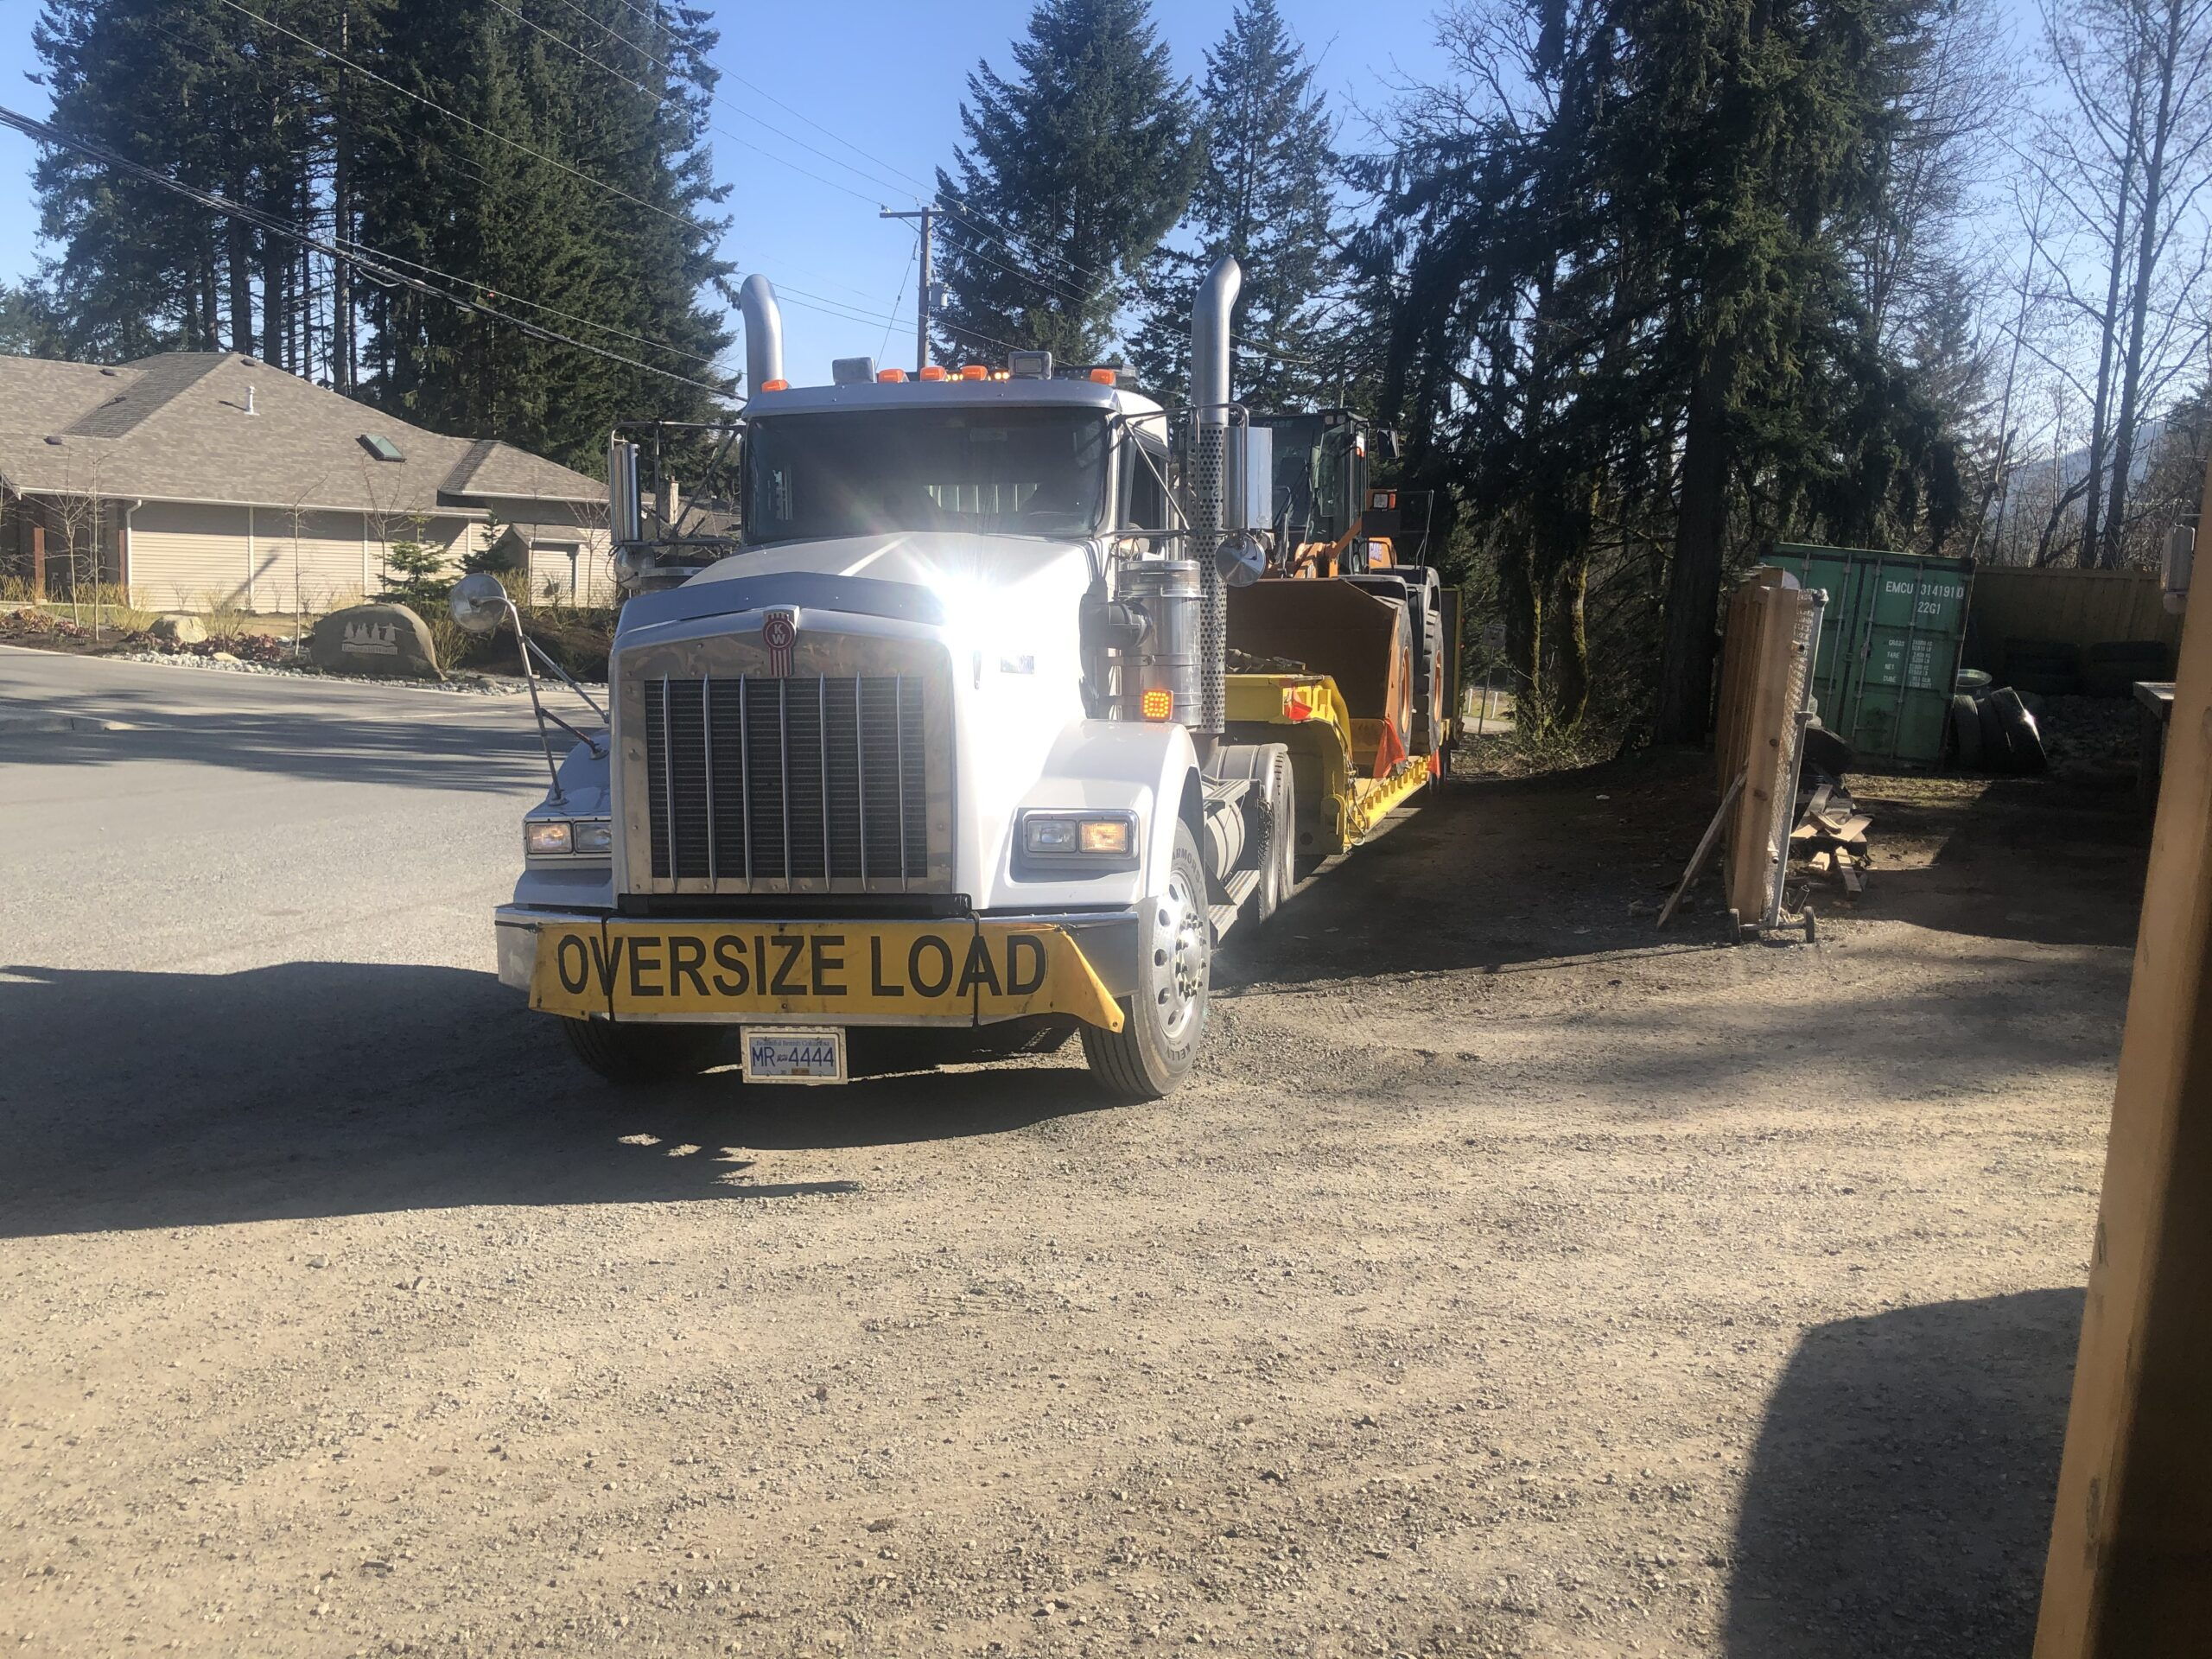 HB Towing towing a wheel loader